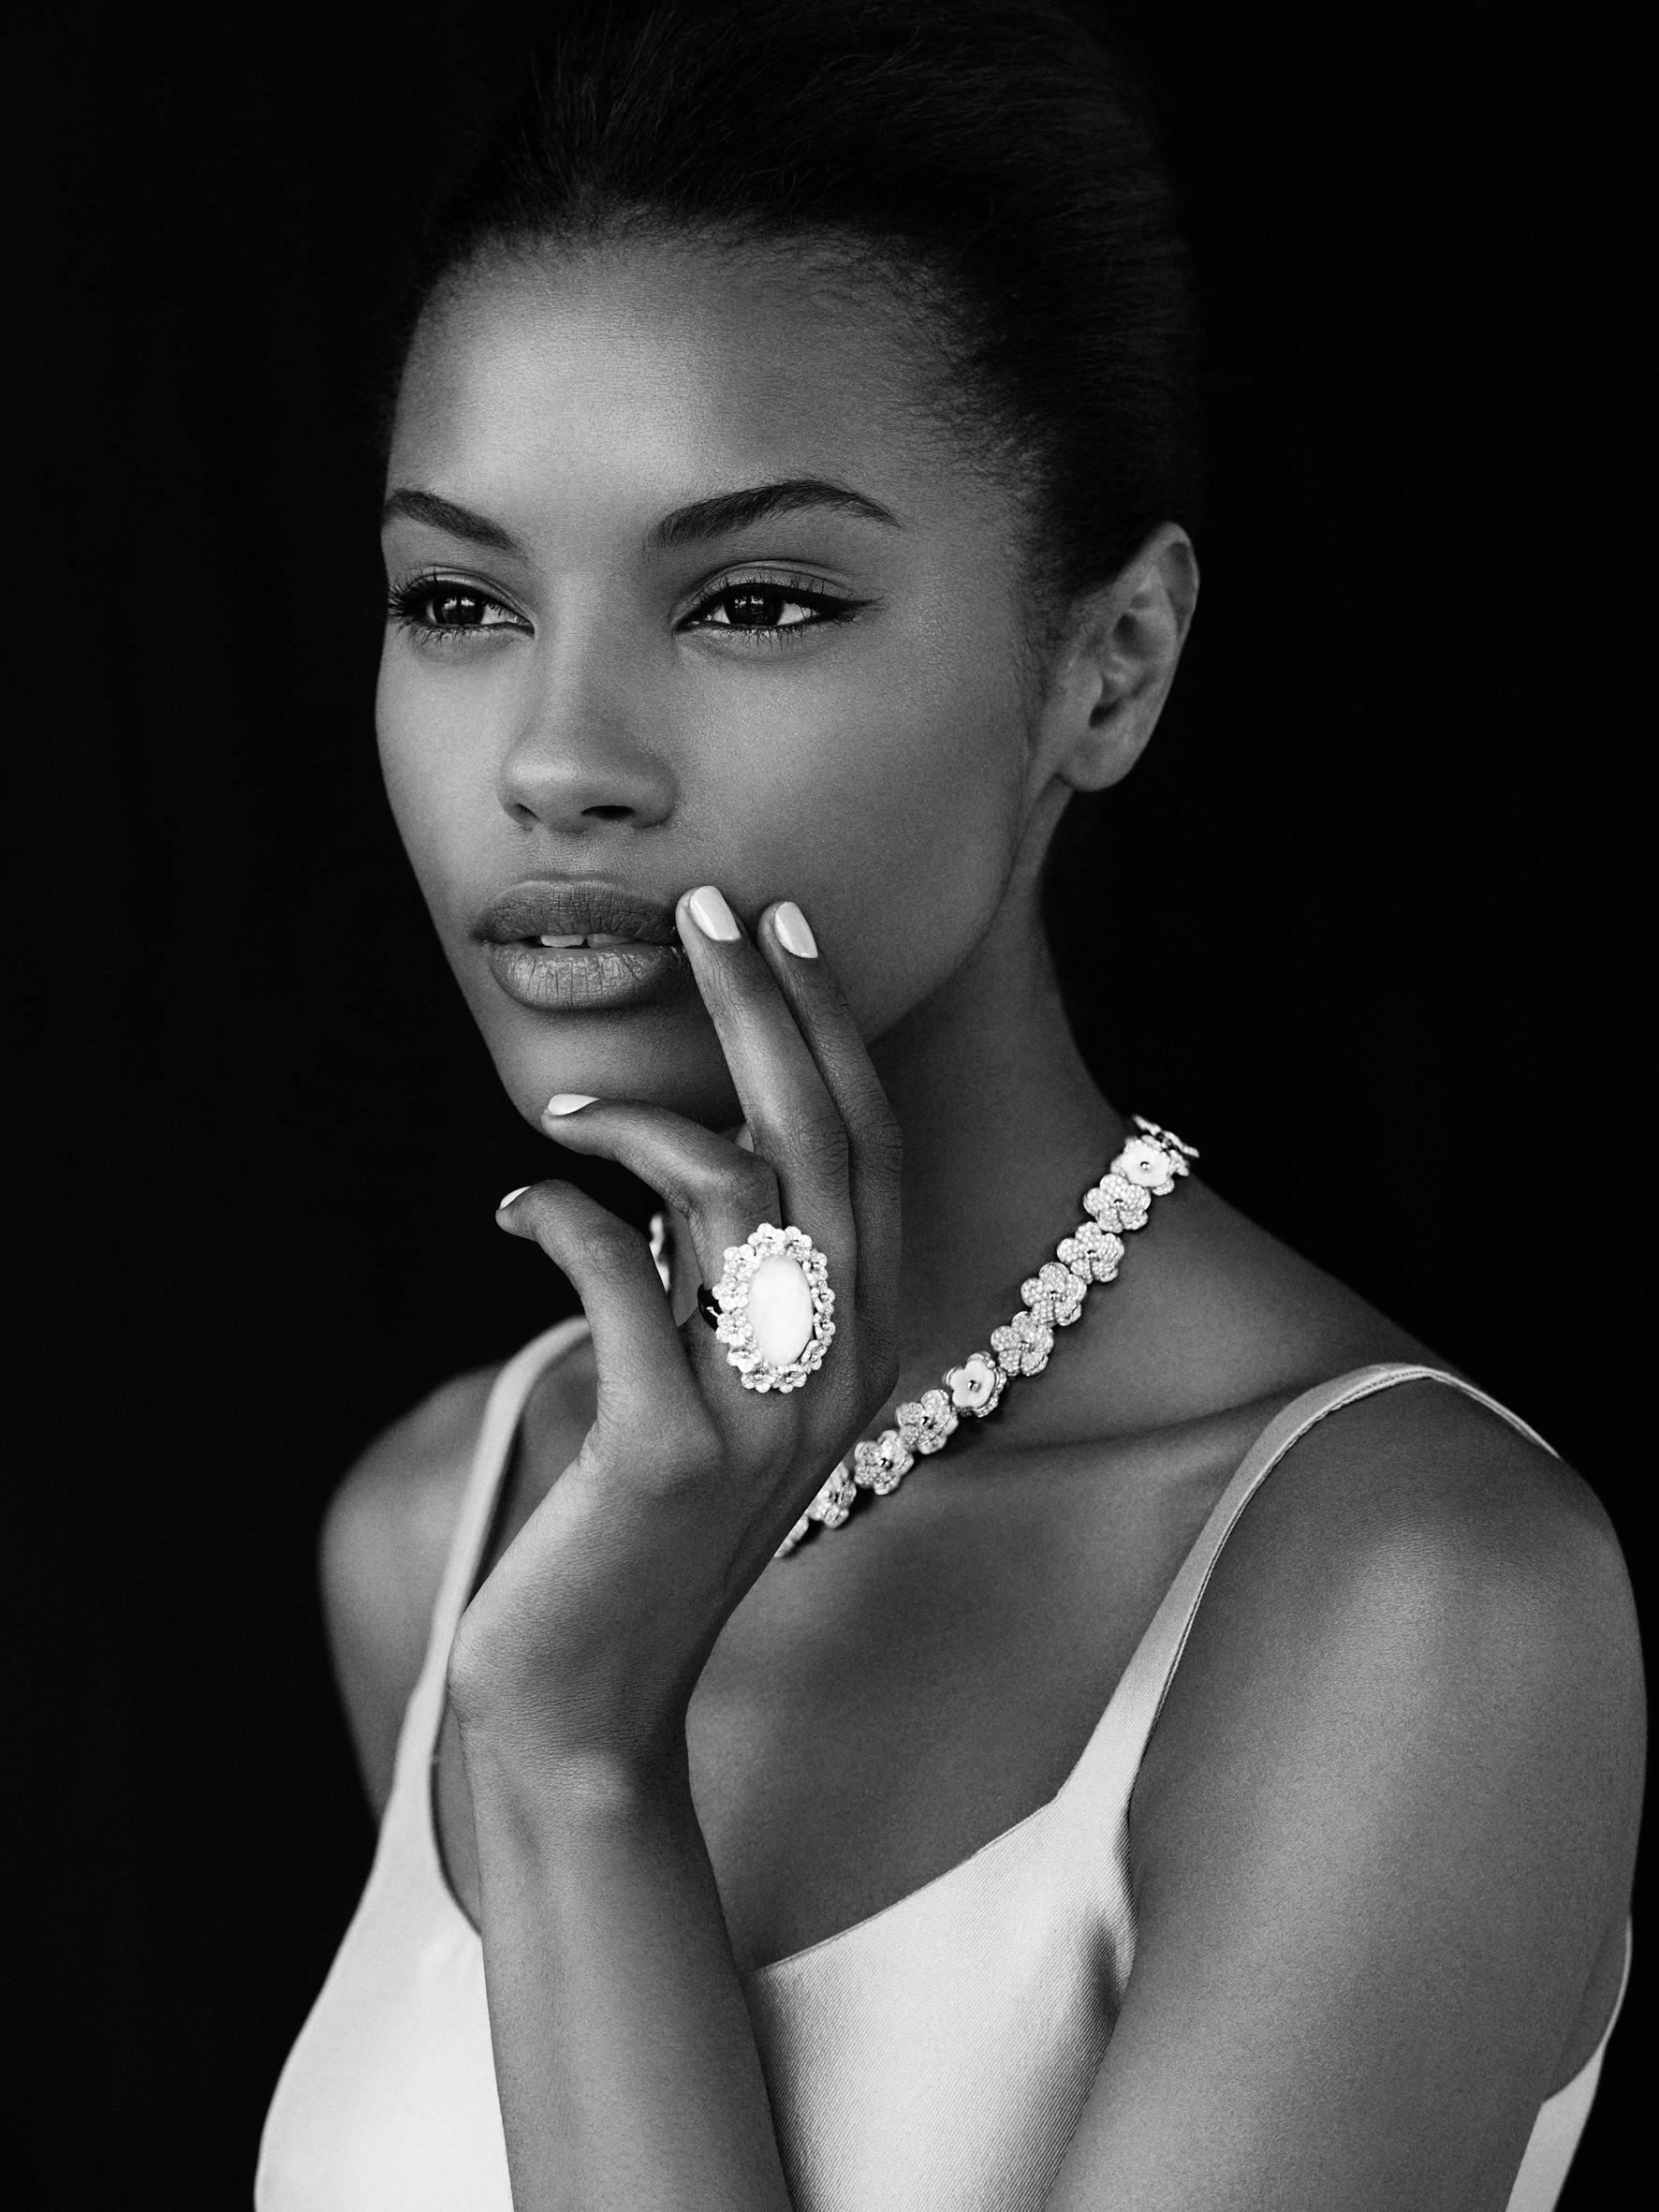 Black Super Model Introduces Meissen Jewelry Collection New York Trend Online